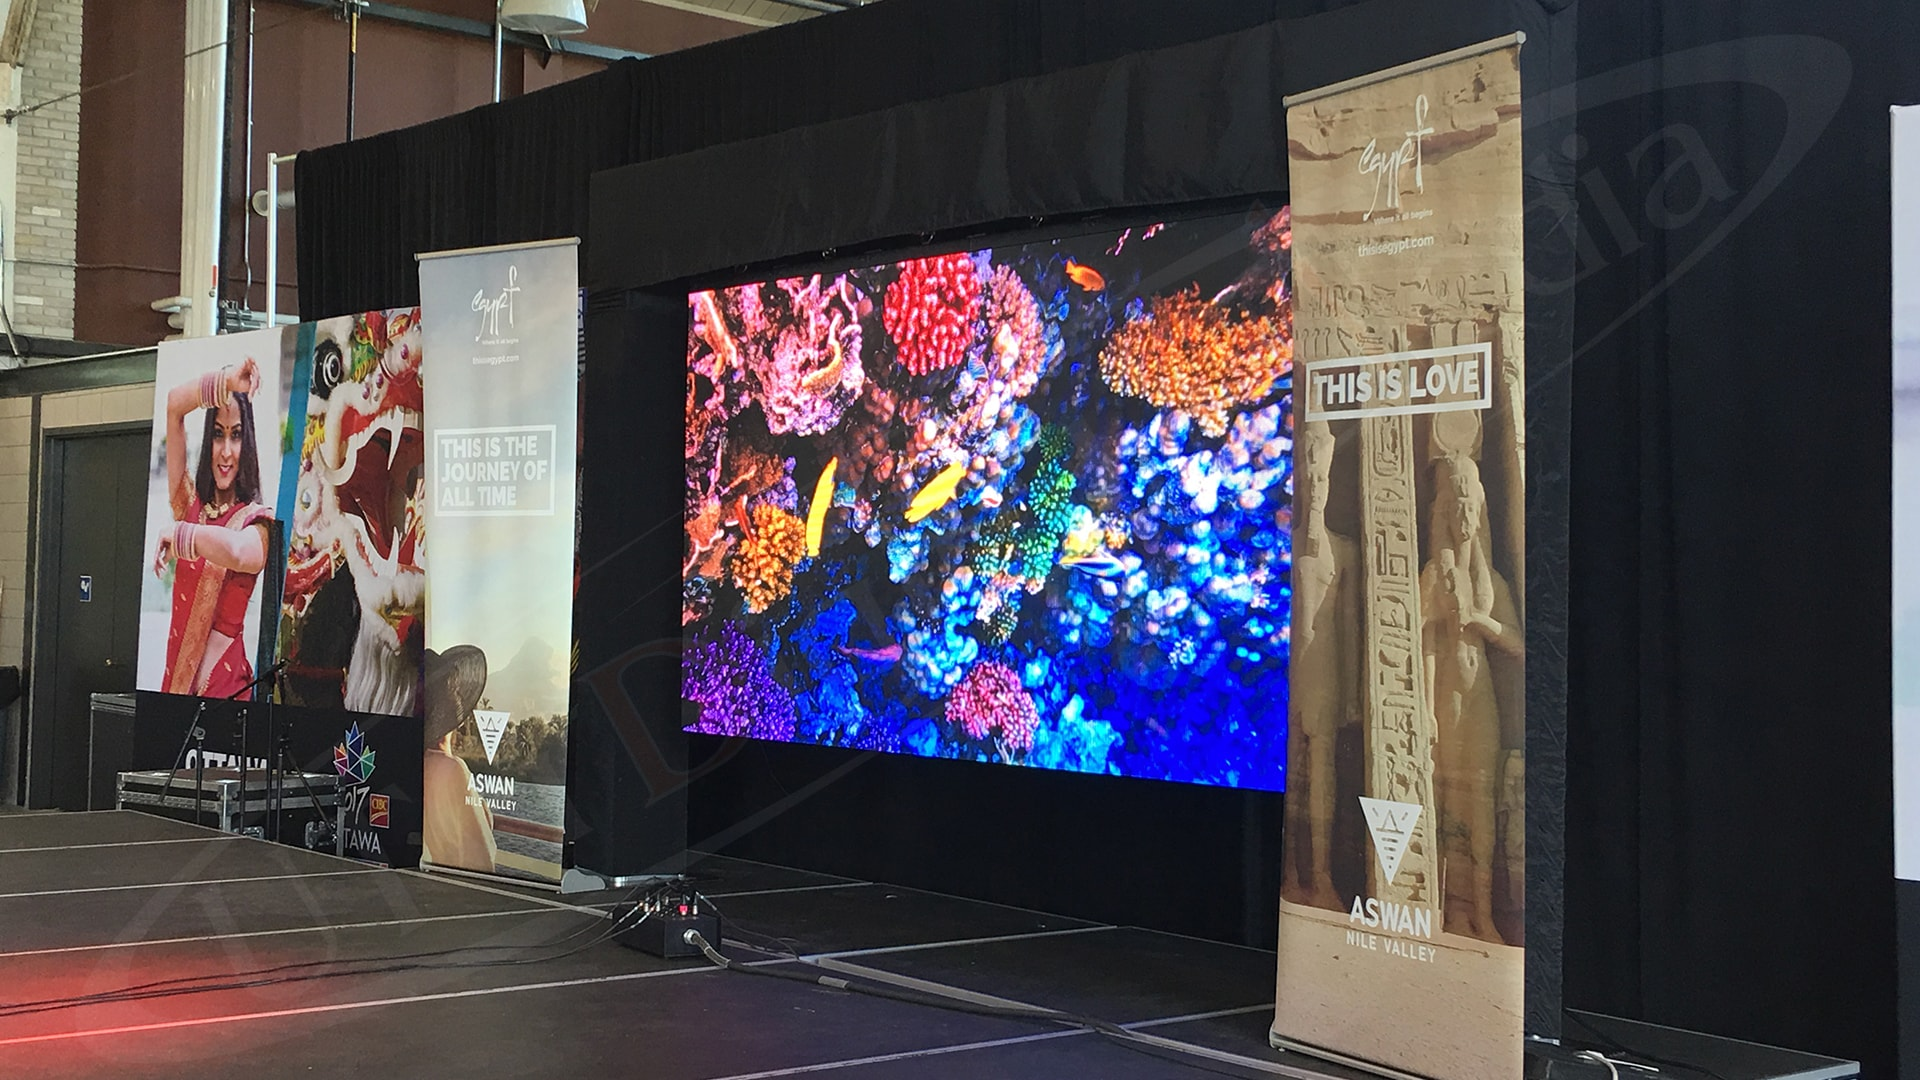 Benefits of Renting Digital Signage for your Next Event